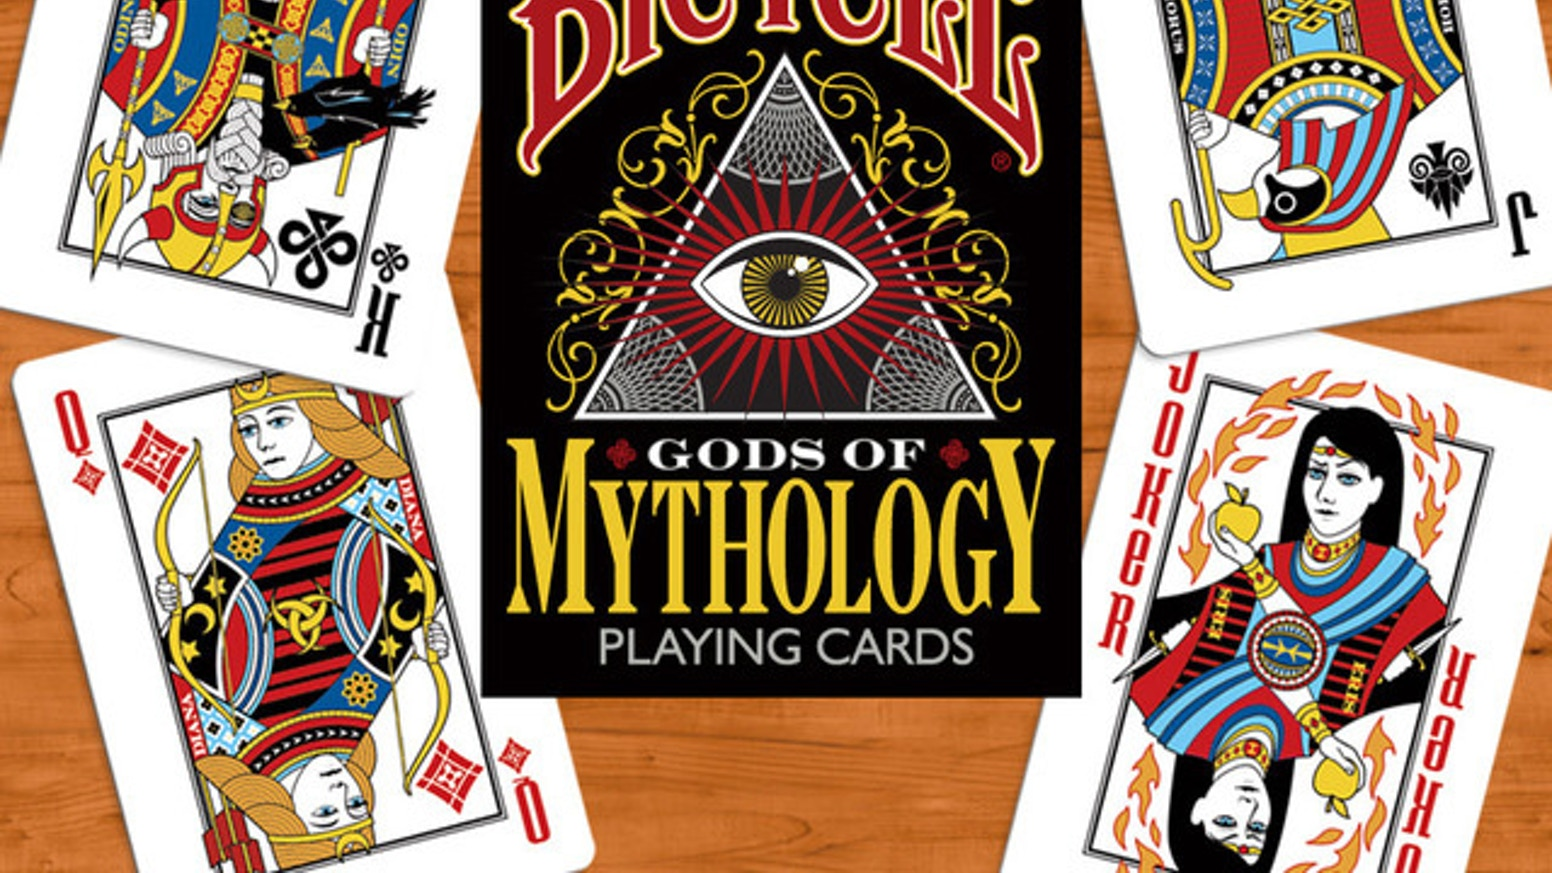 Bicycle Gods of Mythology Playing Cards by Collectable Playing Cards ...